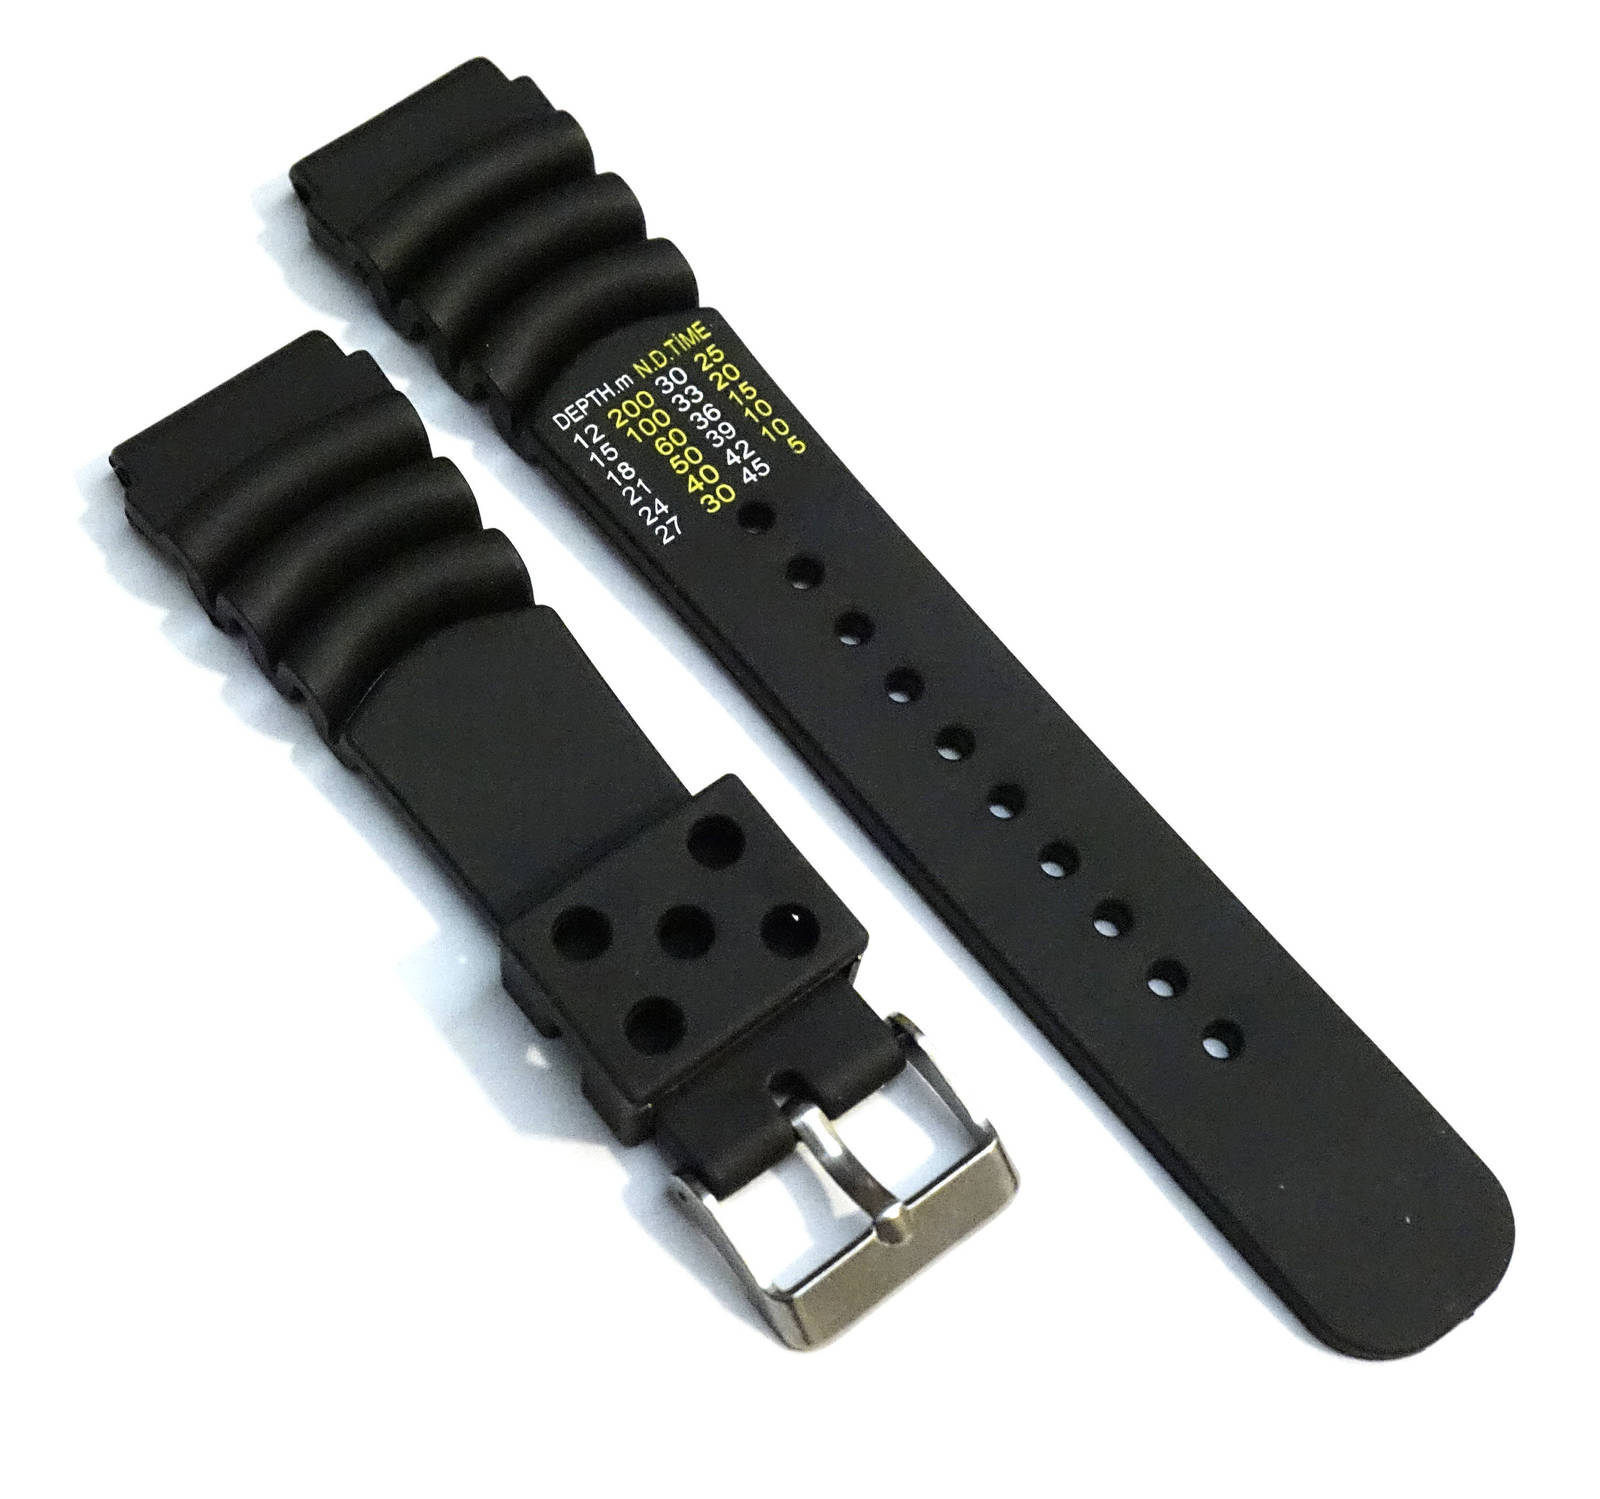 New Z22 Seiko Rubber Divers Watch Band Strap 22mm - From U.S